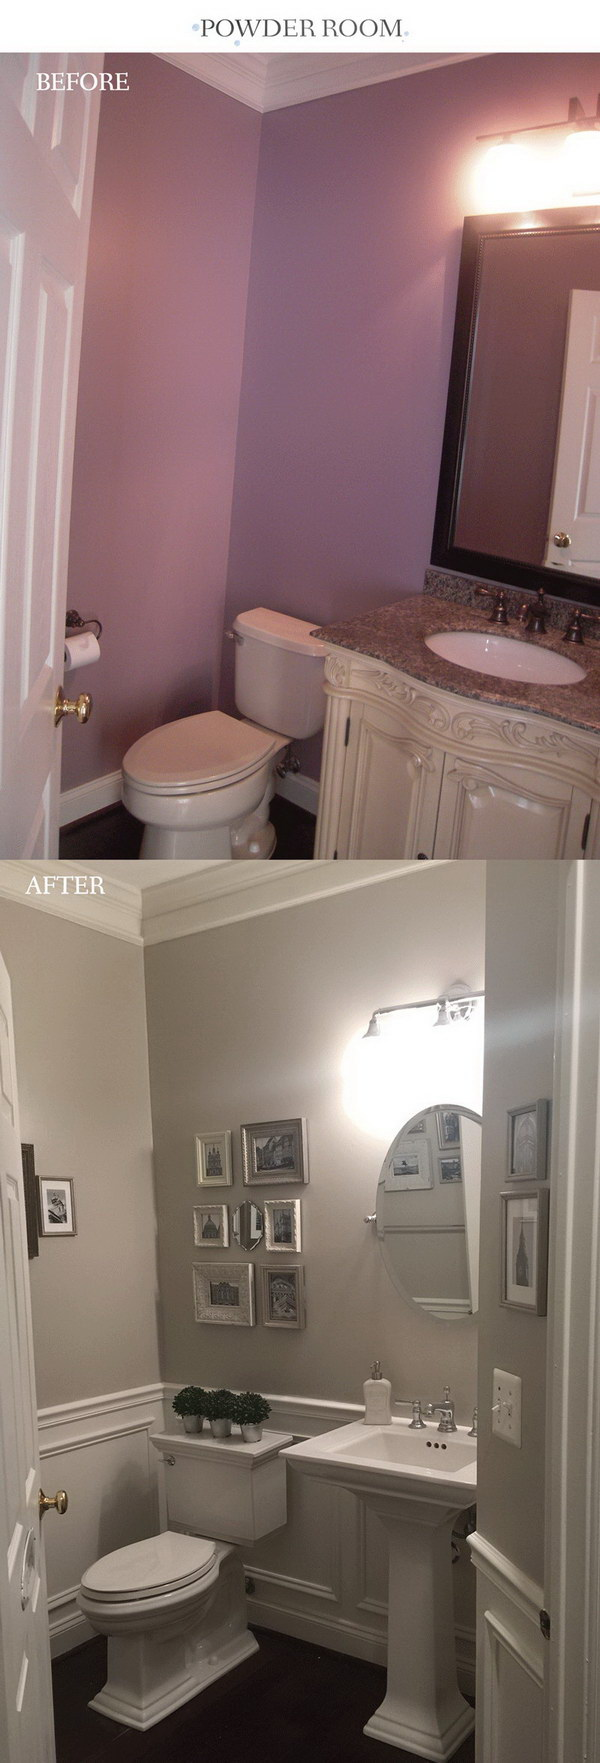 5-bathroom-remodeling-ideas